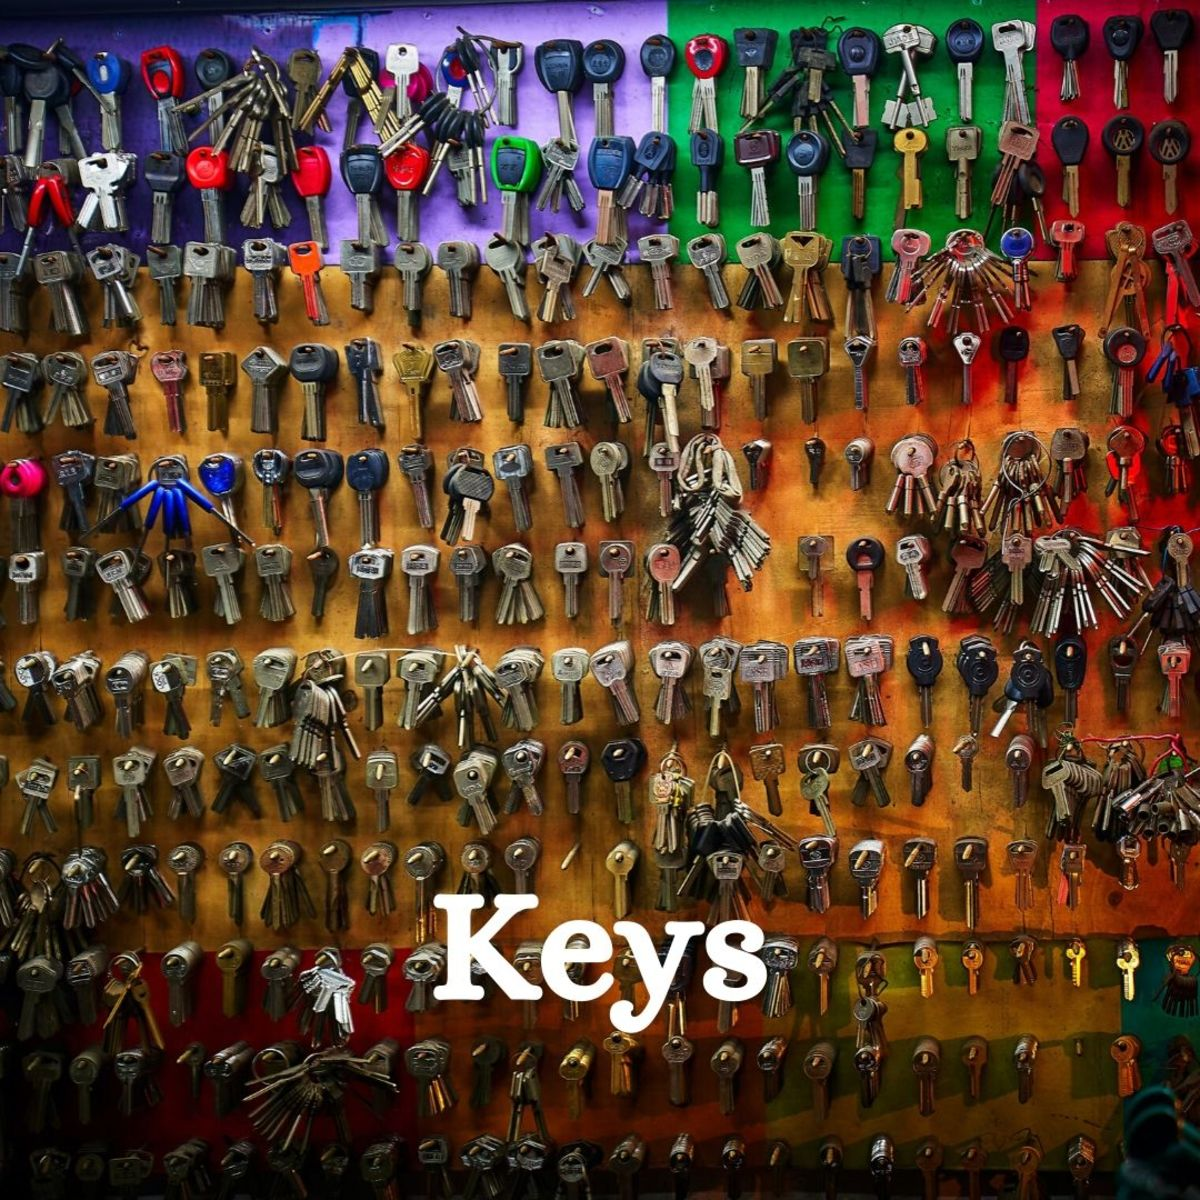 Keys come in all shapes, sizes, and materials.